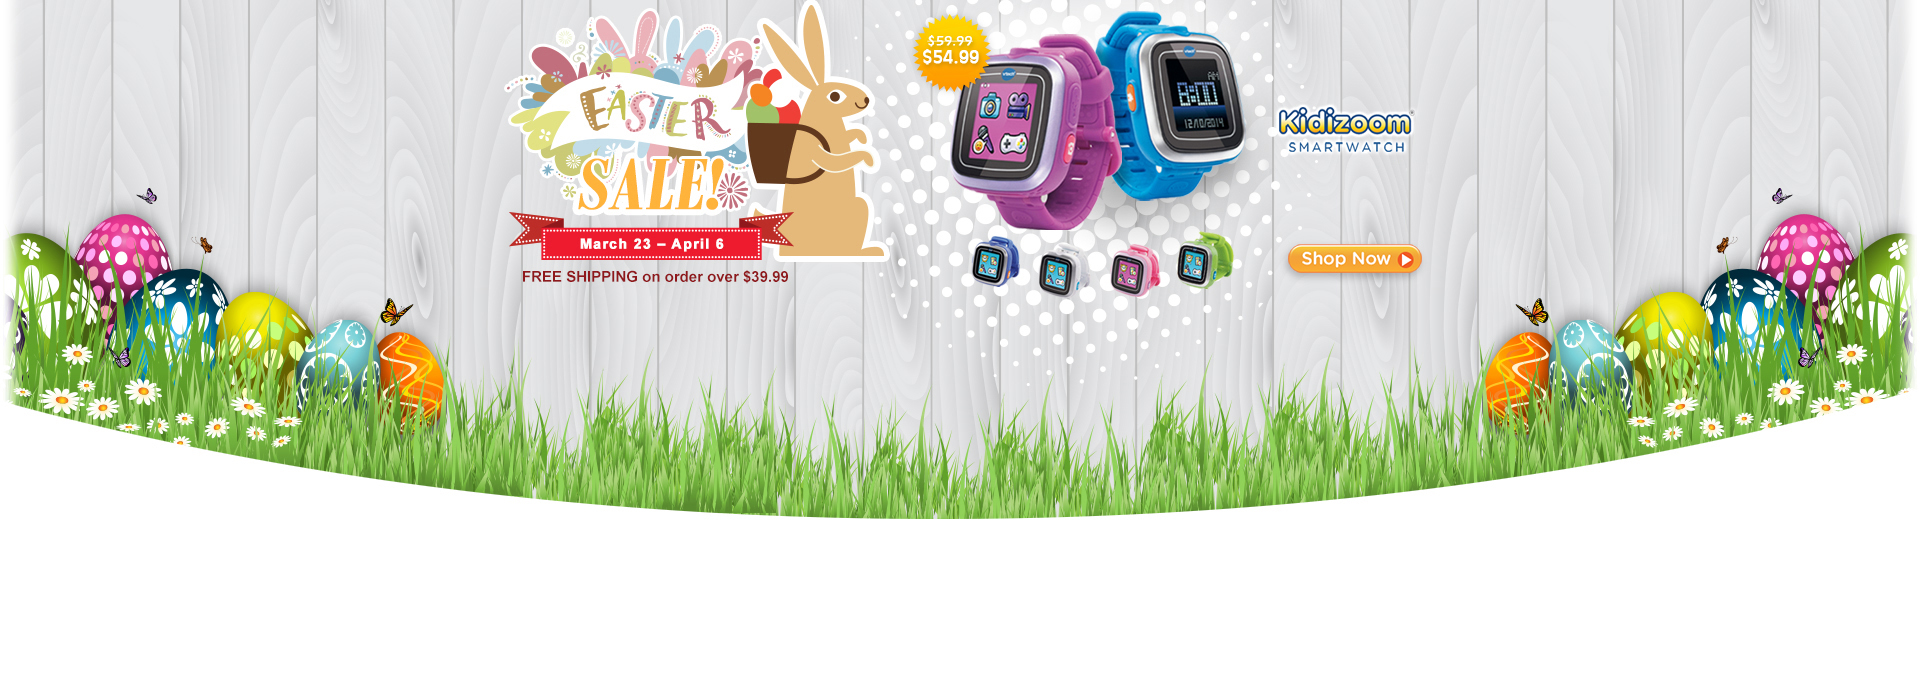 Easter Sale - Kidizoom Smartwatch